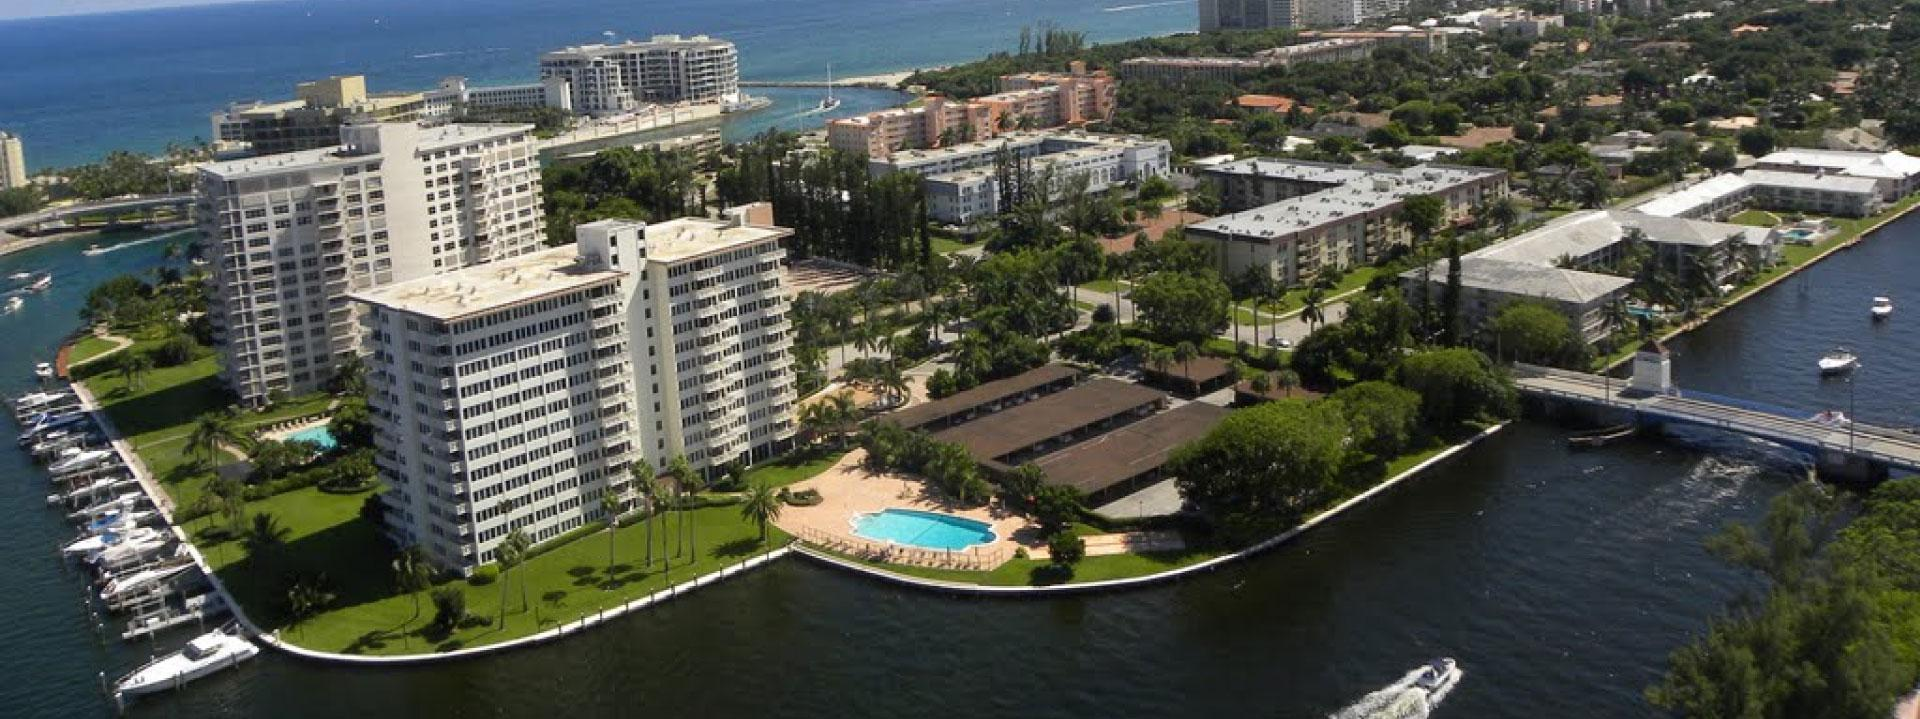 Boca Islands Homes for Sale Boca Raton